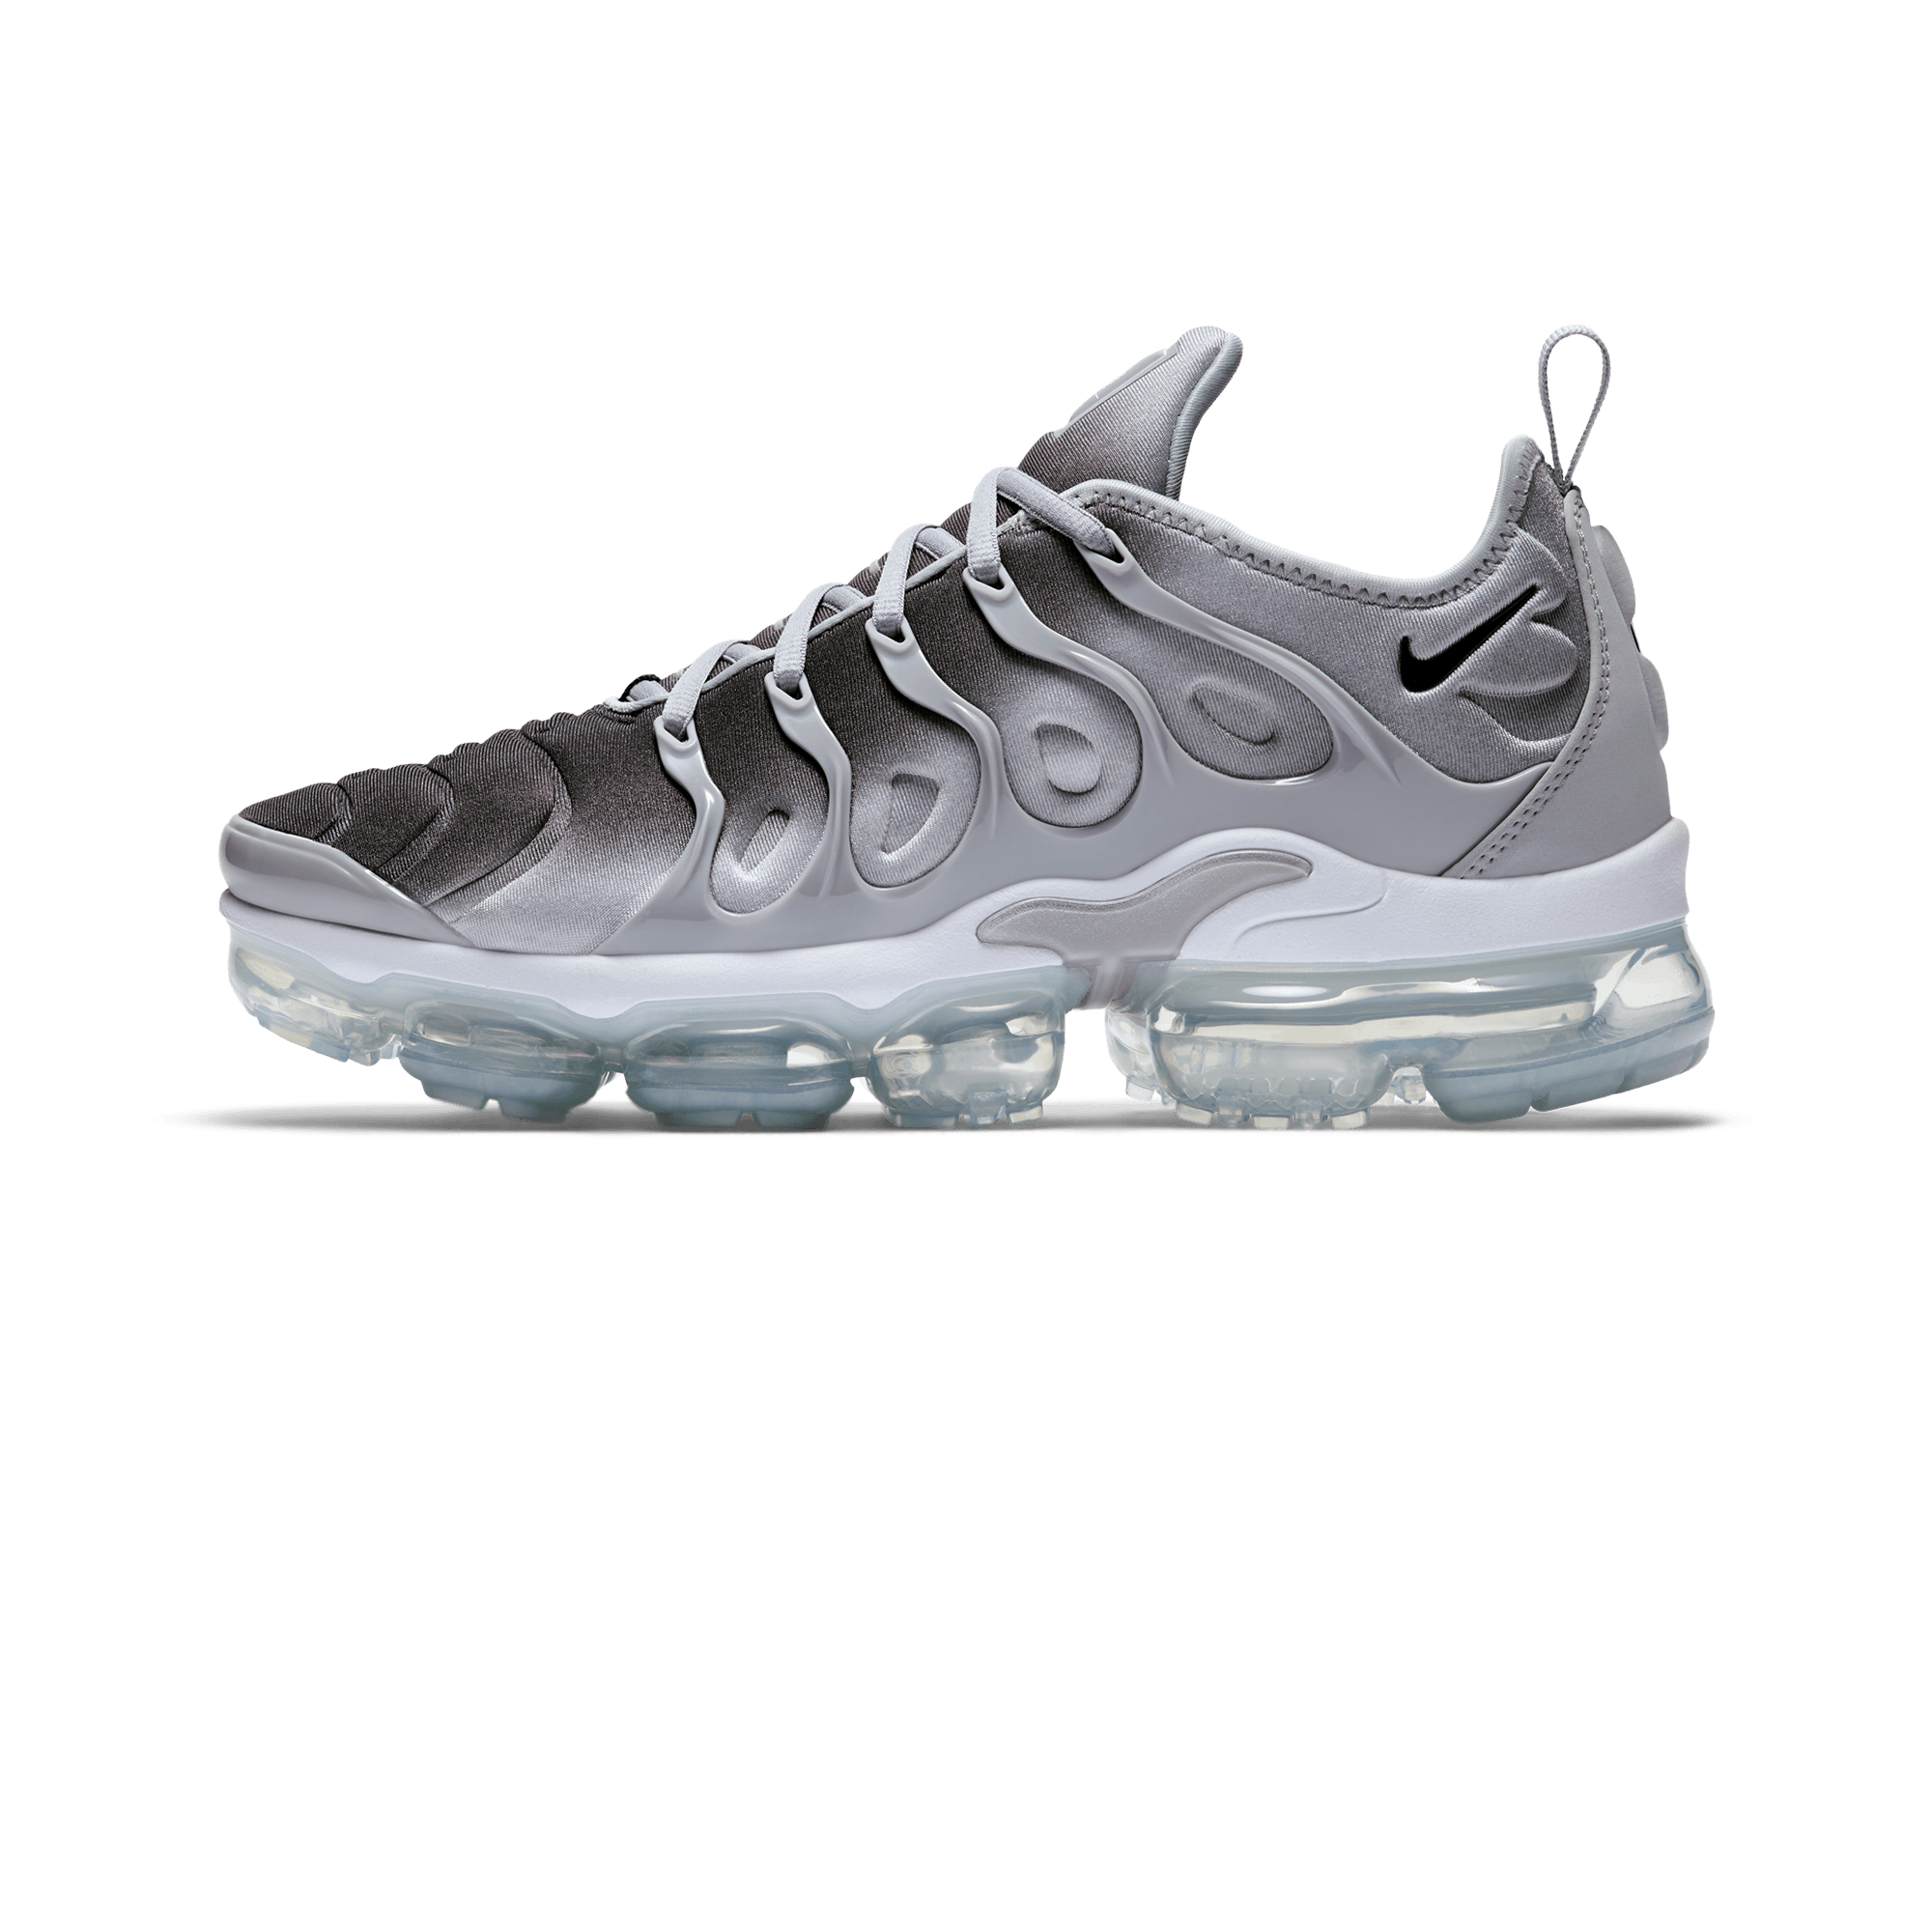 new arrival 9a2f7 d1276 Nike Air Vapormax Plus wolf grey / black / white - Men | Holypopstore.com